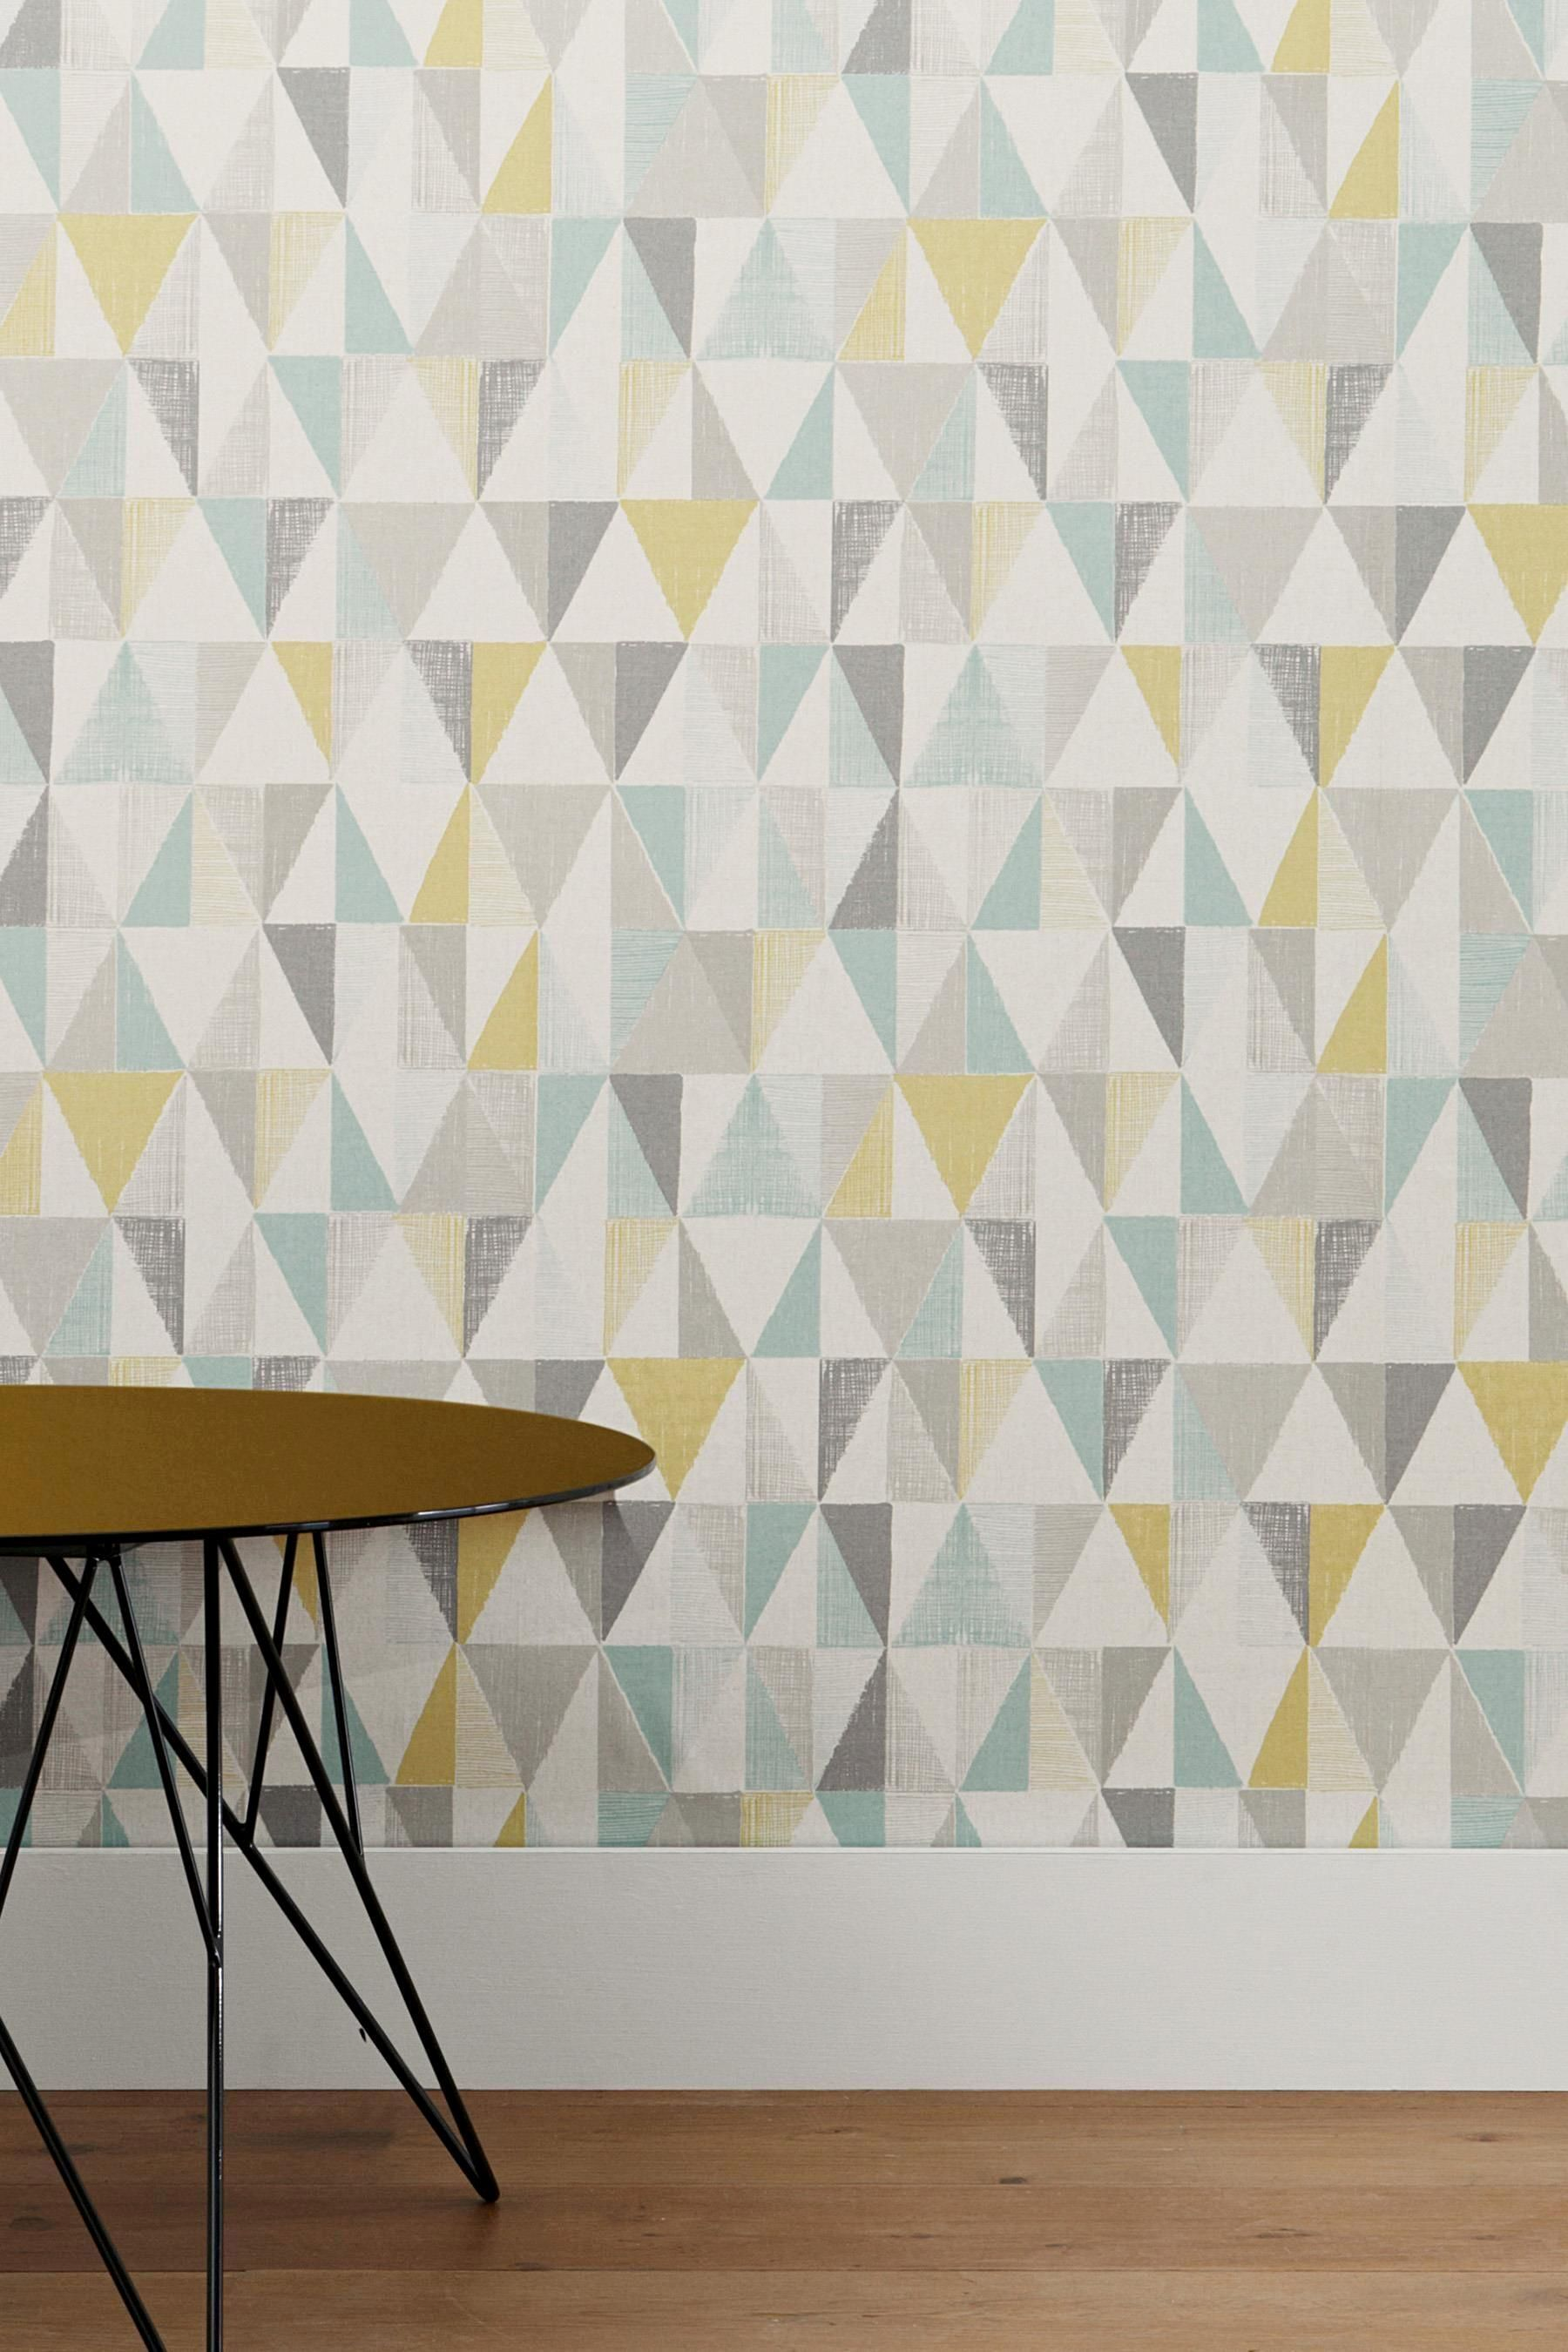 Affordable and stylish wallpaper from Next | Geo, Triangle and Wallpaper